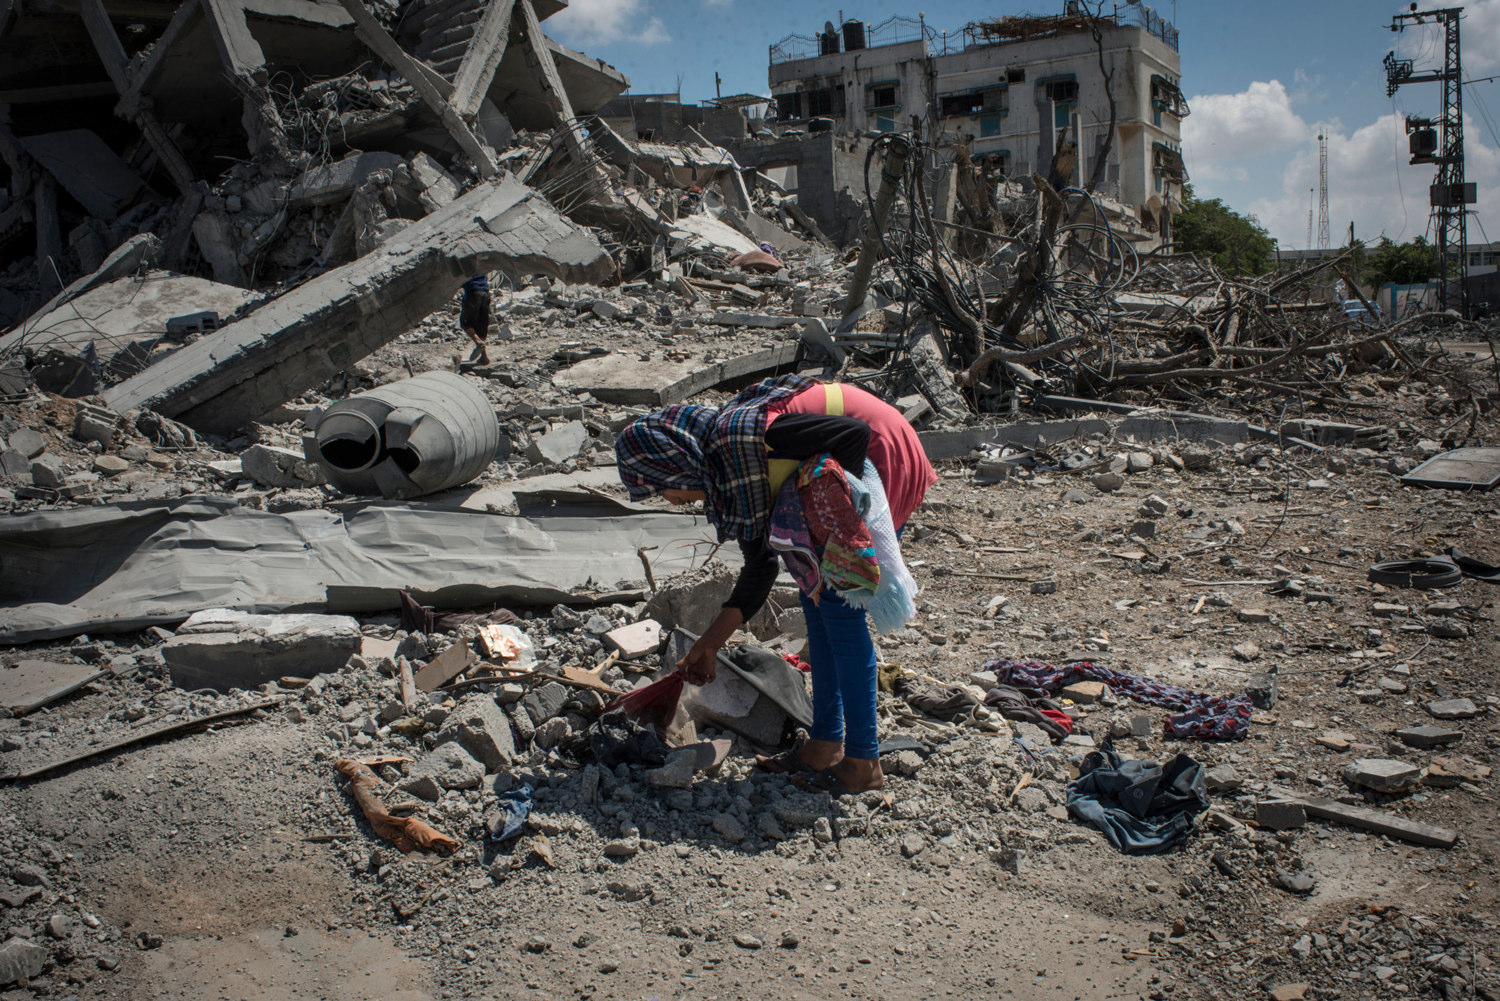 A girl picks through the rubble at what was previously her families home in Beit Hanoun, Gaza.